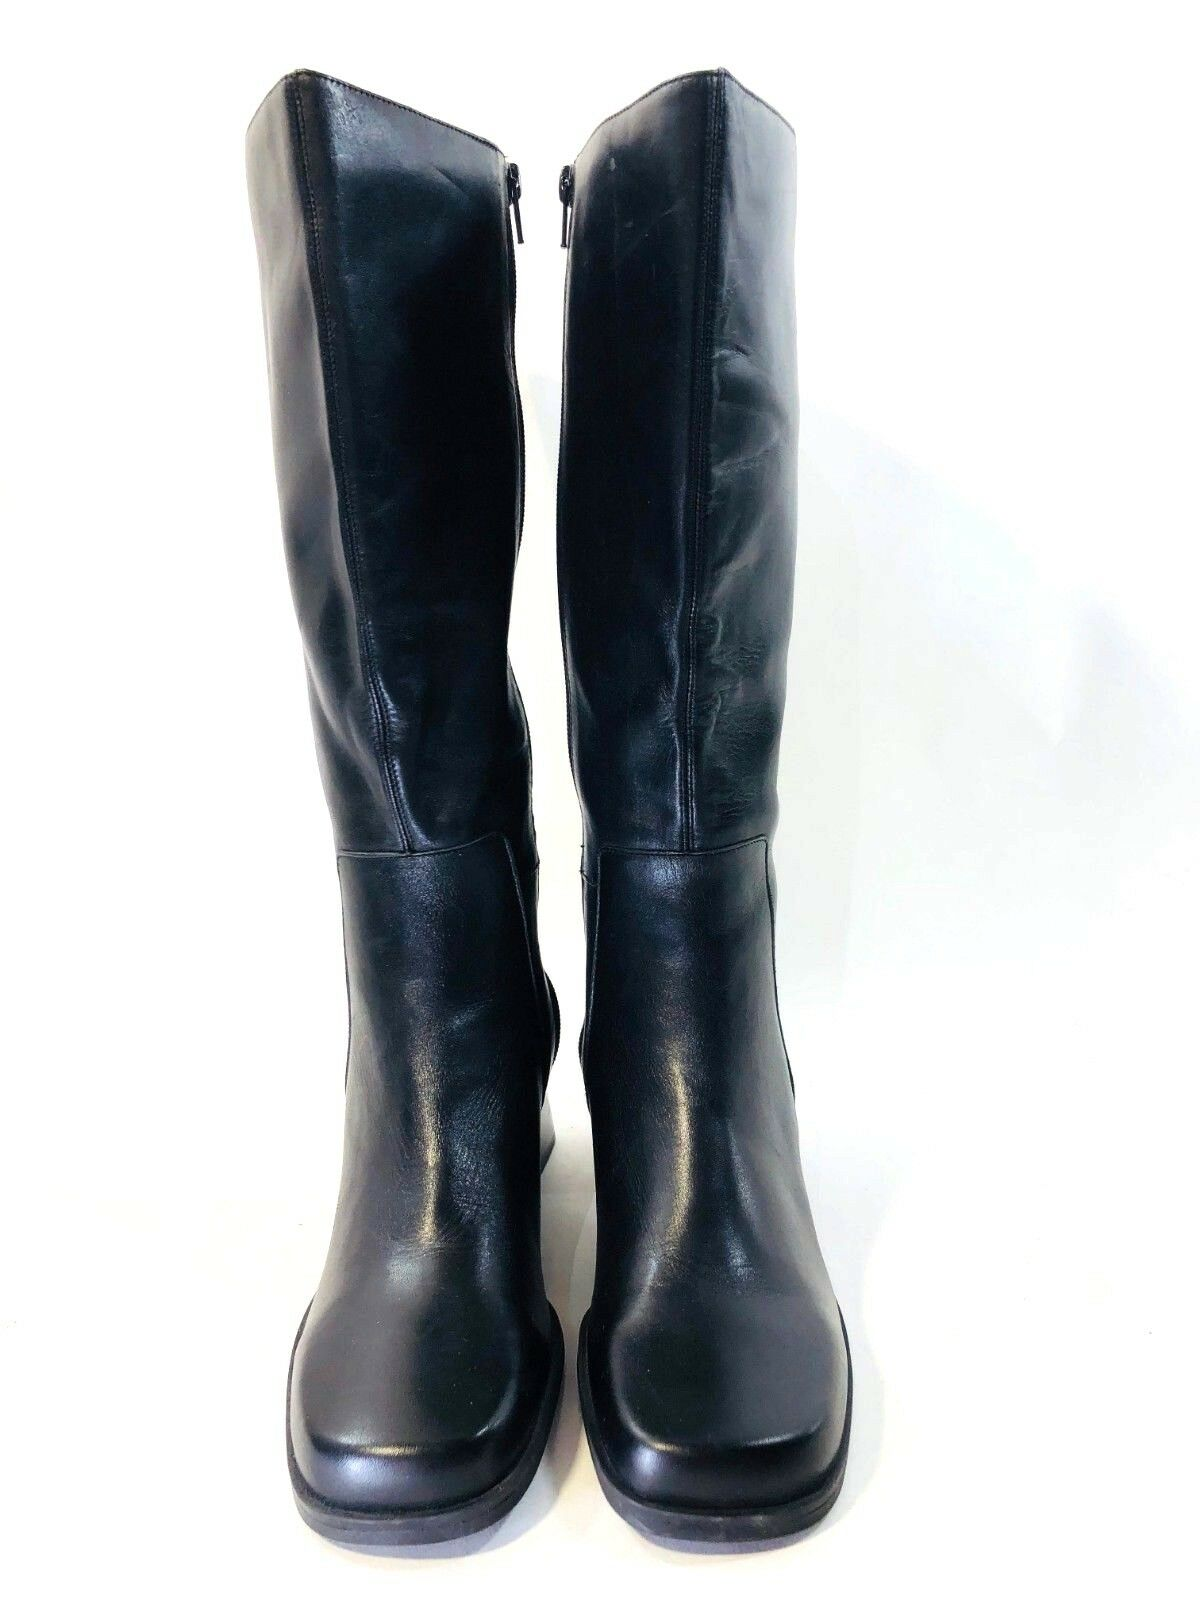 Naturalizer Comfort Women's Tall Black Wonderful Plus Leather Boots Size 8 NWOB